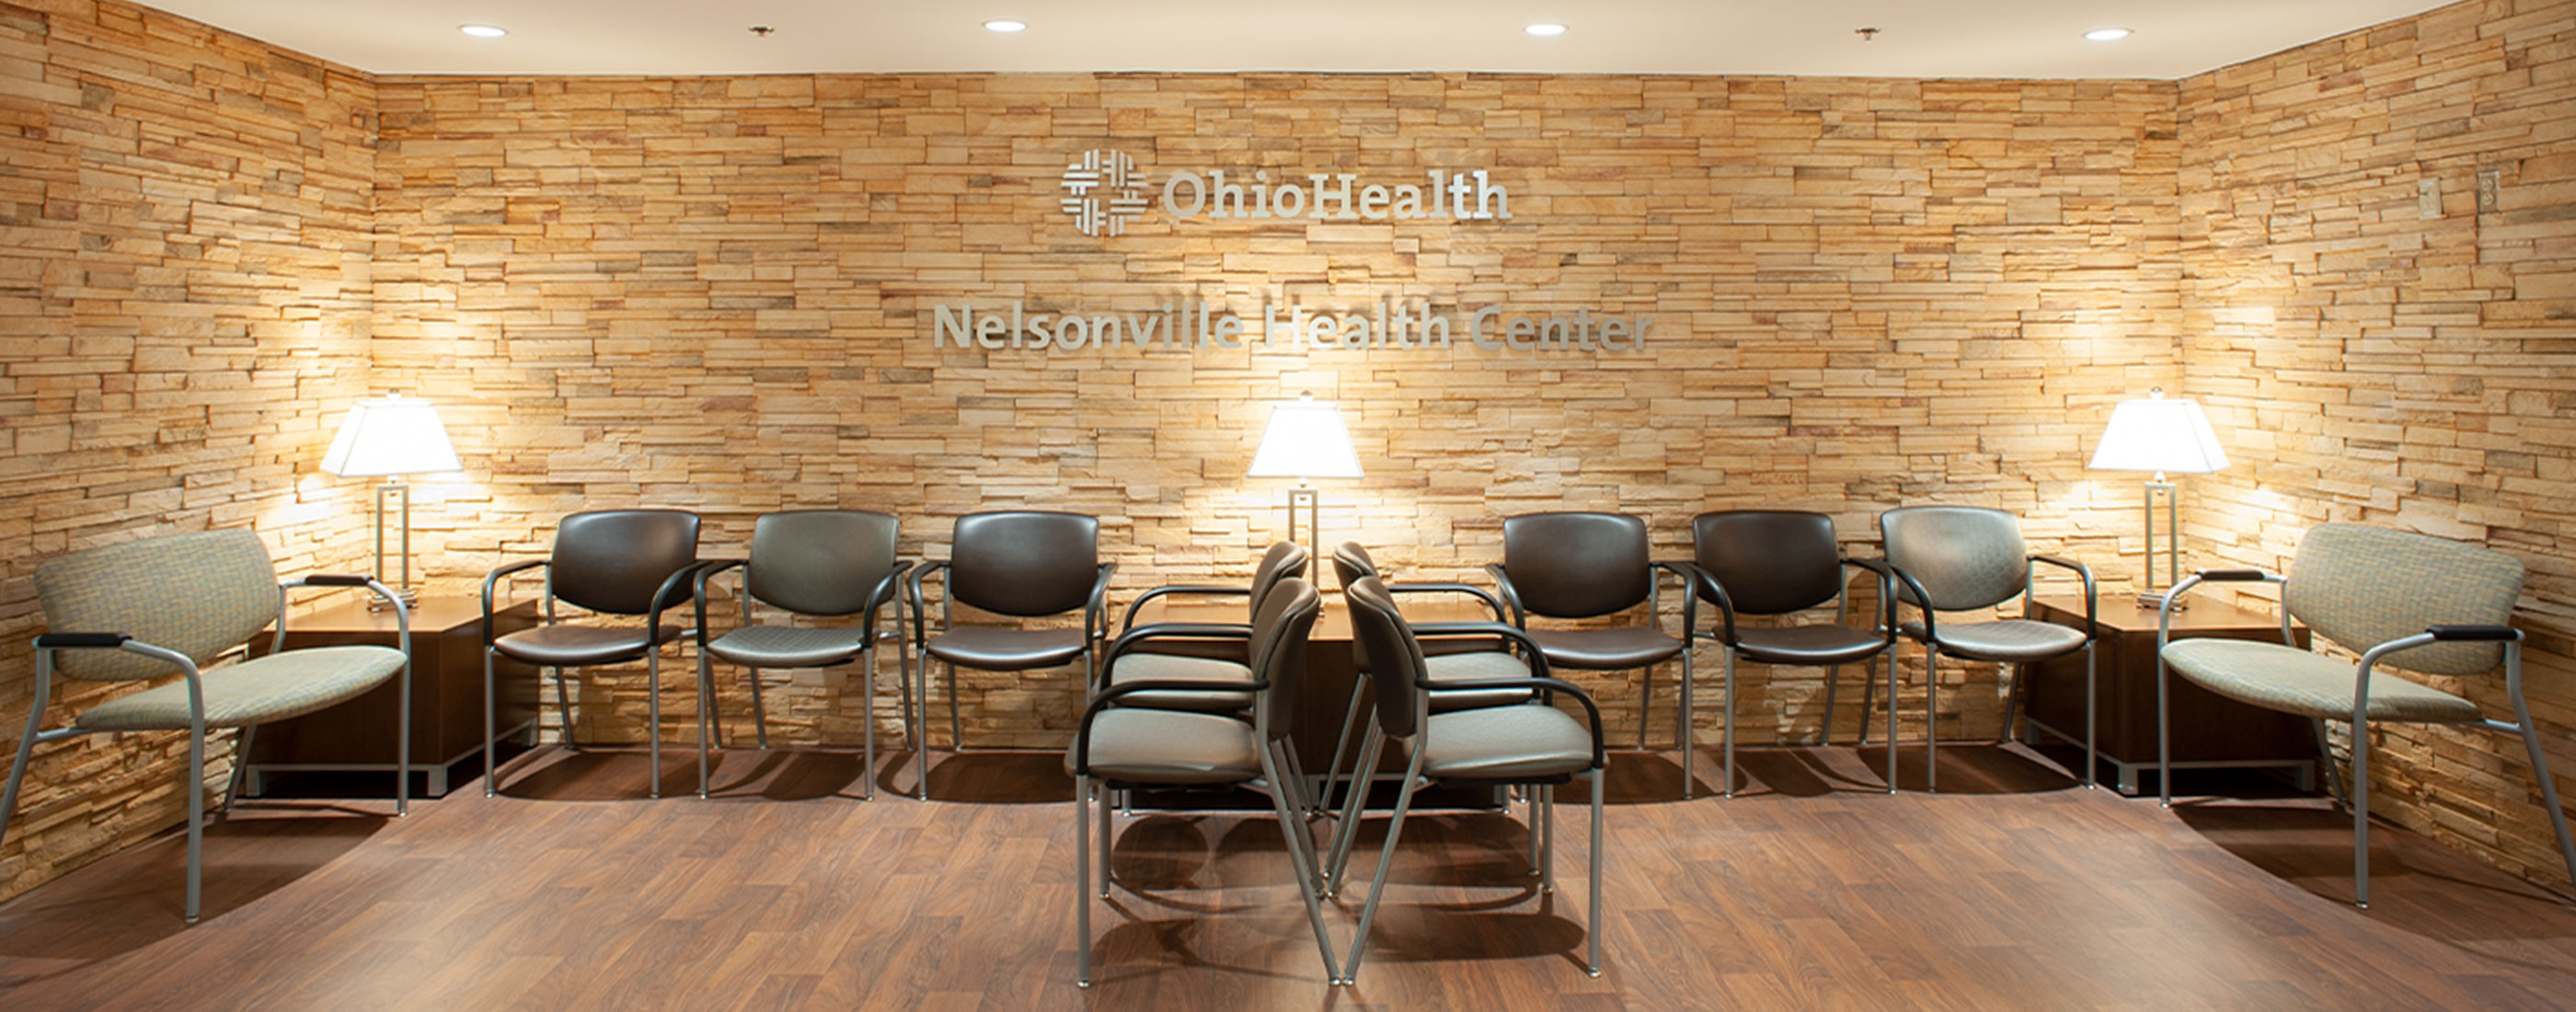 The OhioHealth Nelsonville Health Center was designed with local Star Brick.